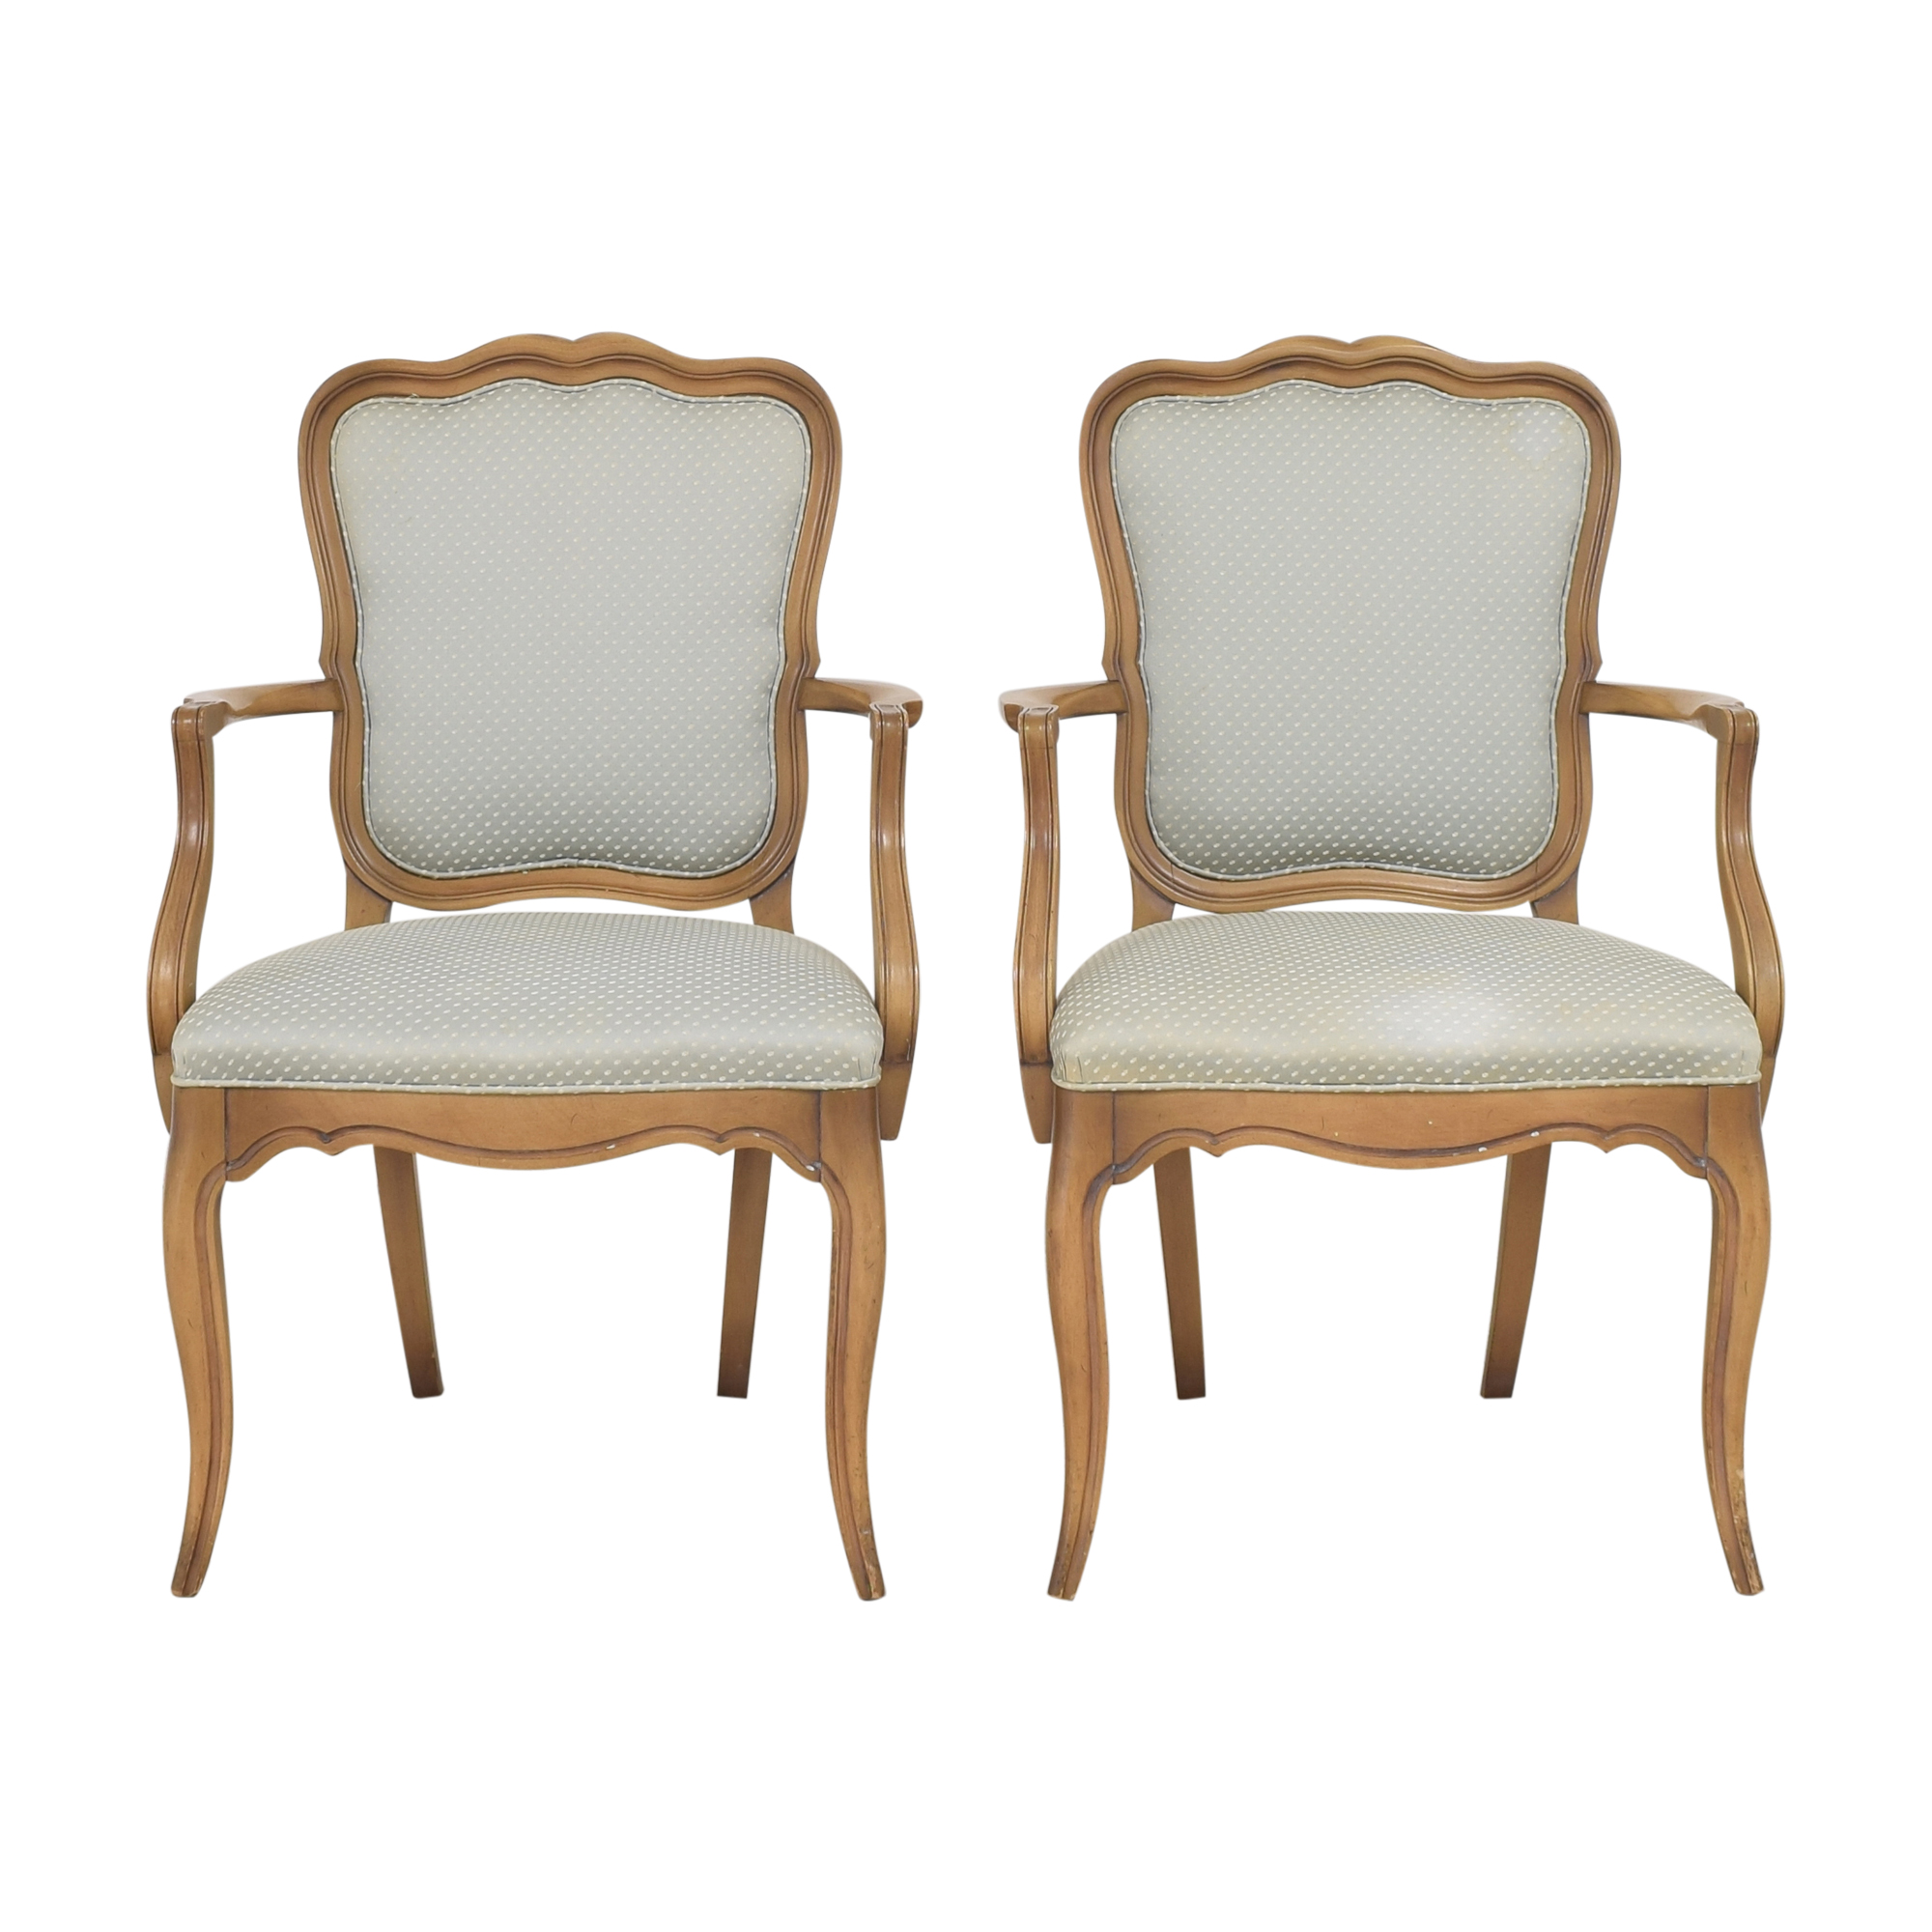 shop White Fine Furniture White Fine Furniture French Provincial-Style Dining Arm Chairs online